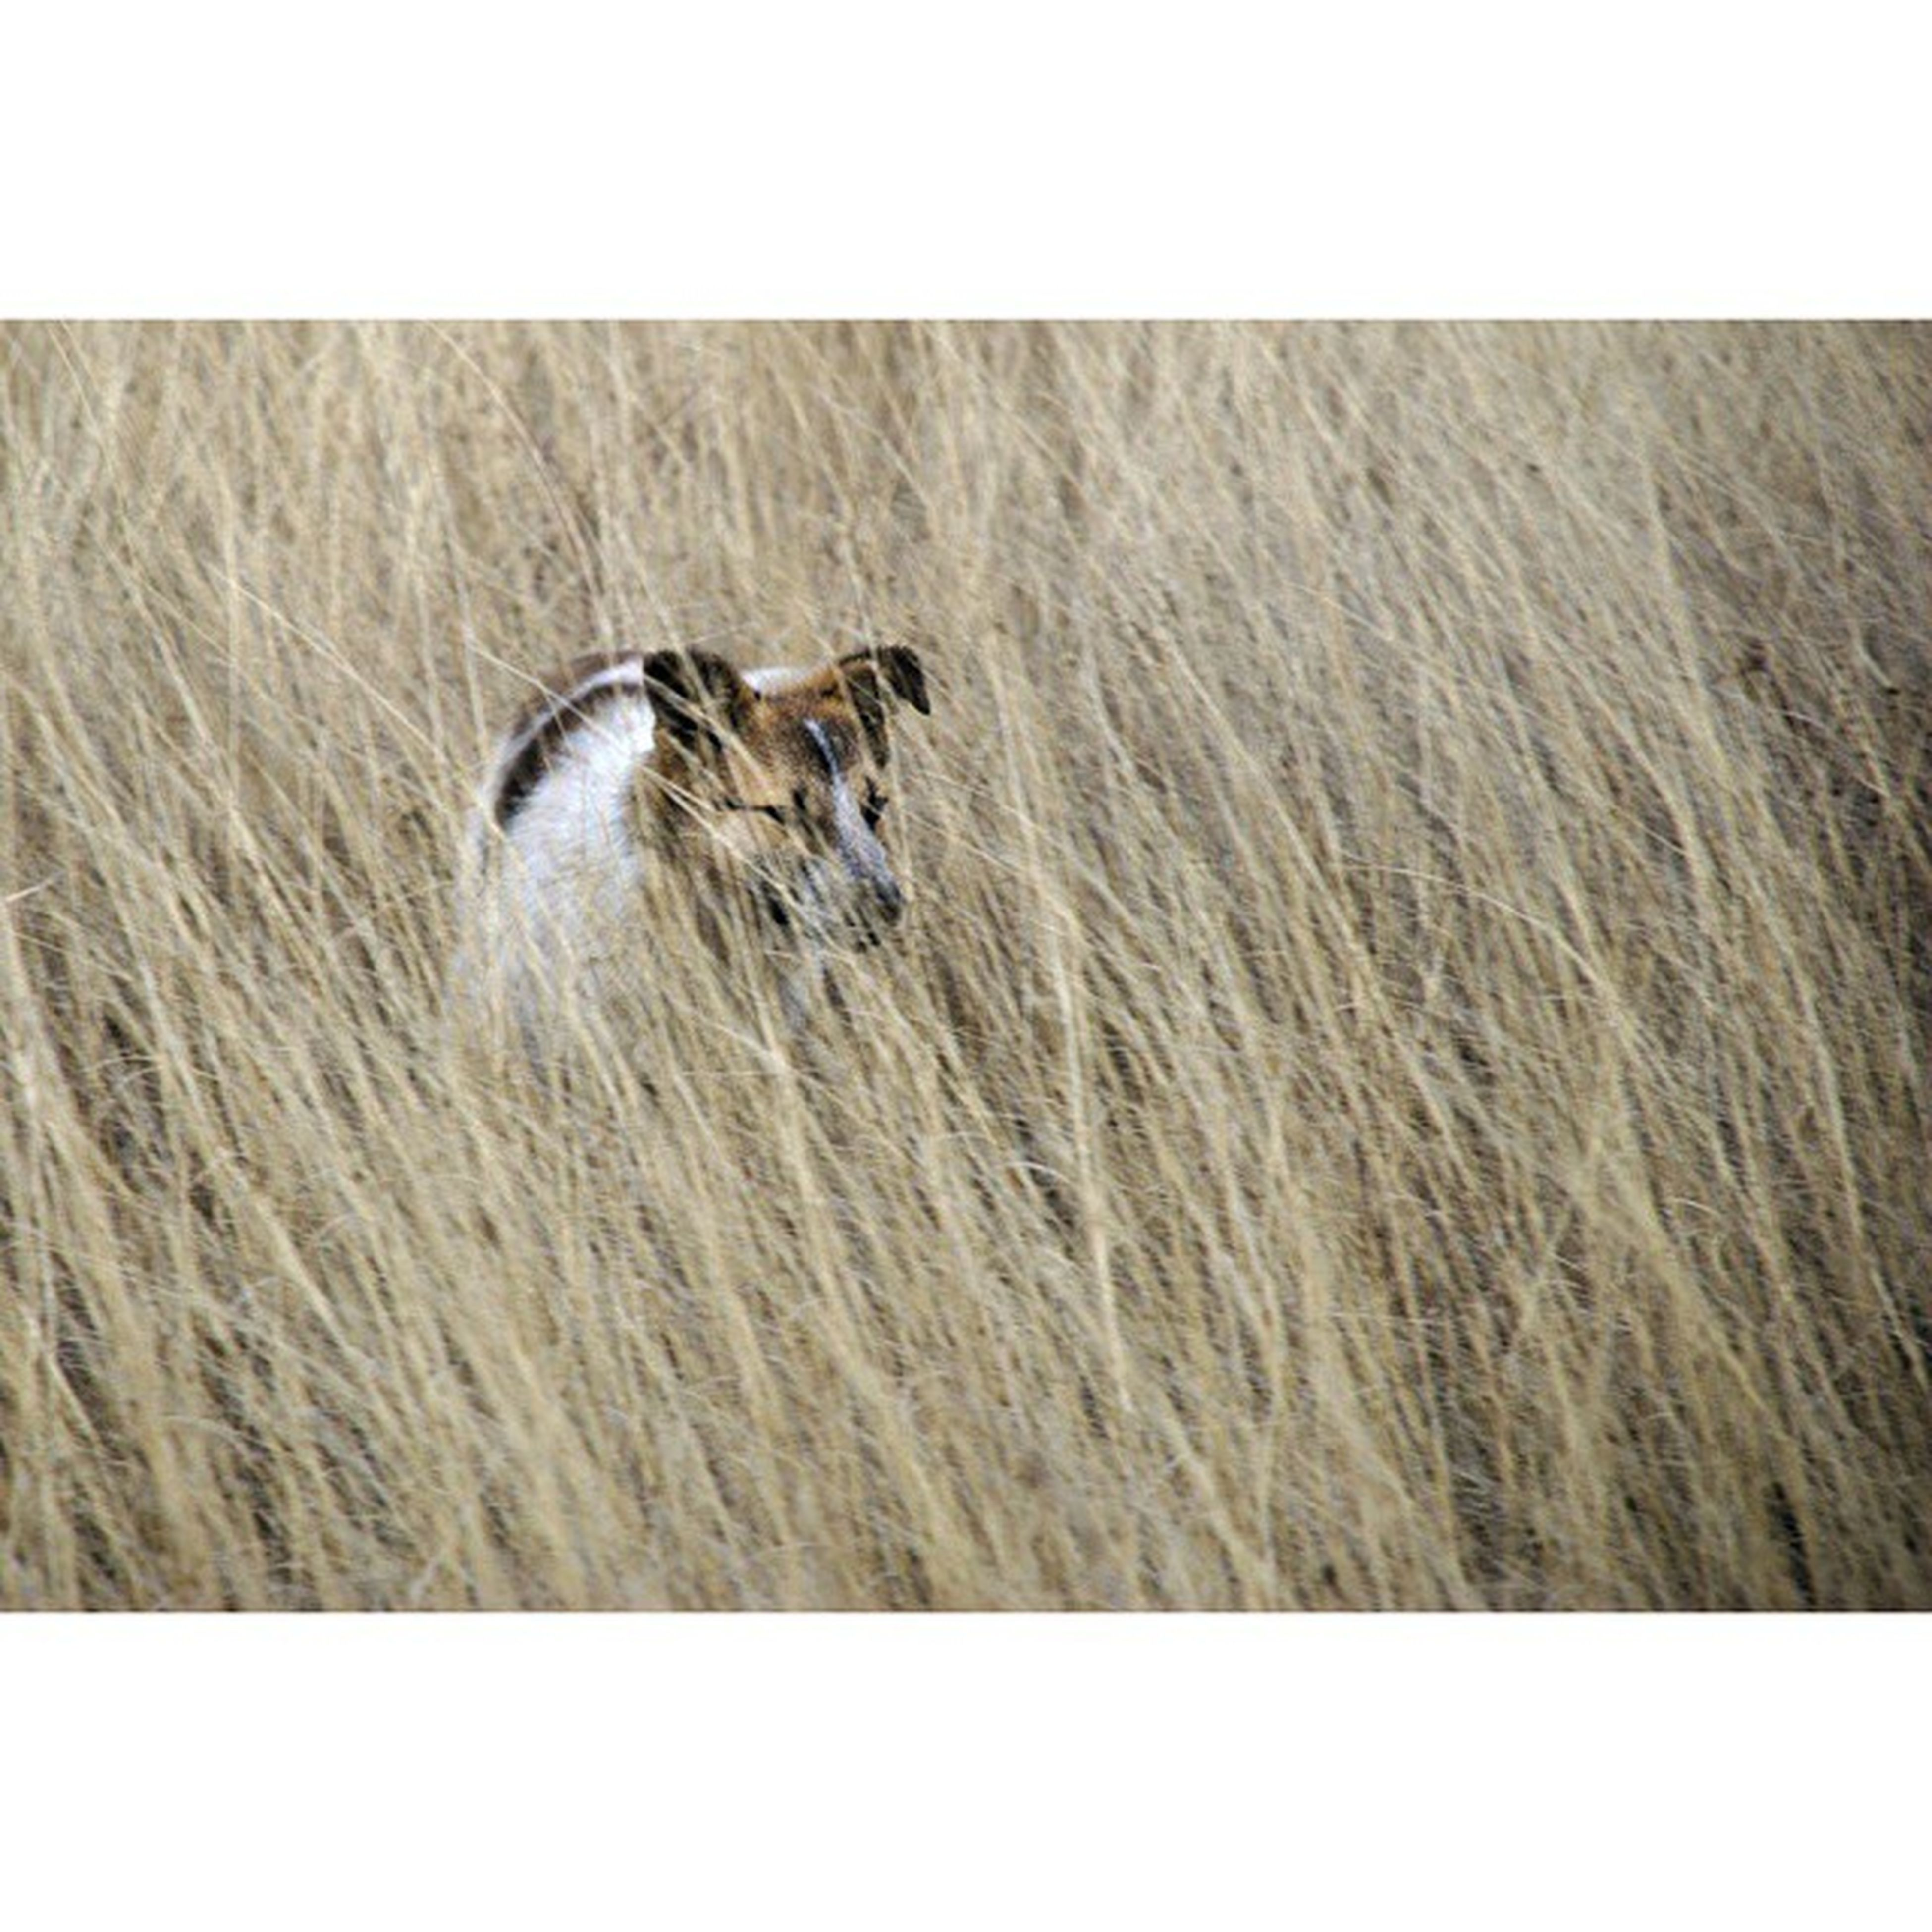 animal themes, transfer print, one animal, auto post production filter, wildlife, animals in the wild, mammal, domestic animals, field, grass, zoology, side view, bird, nature, pets, outdoors, full length, no people, day, animal